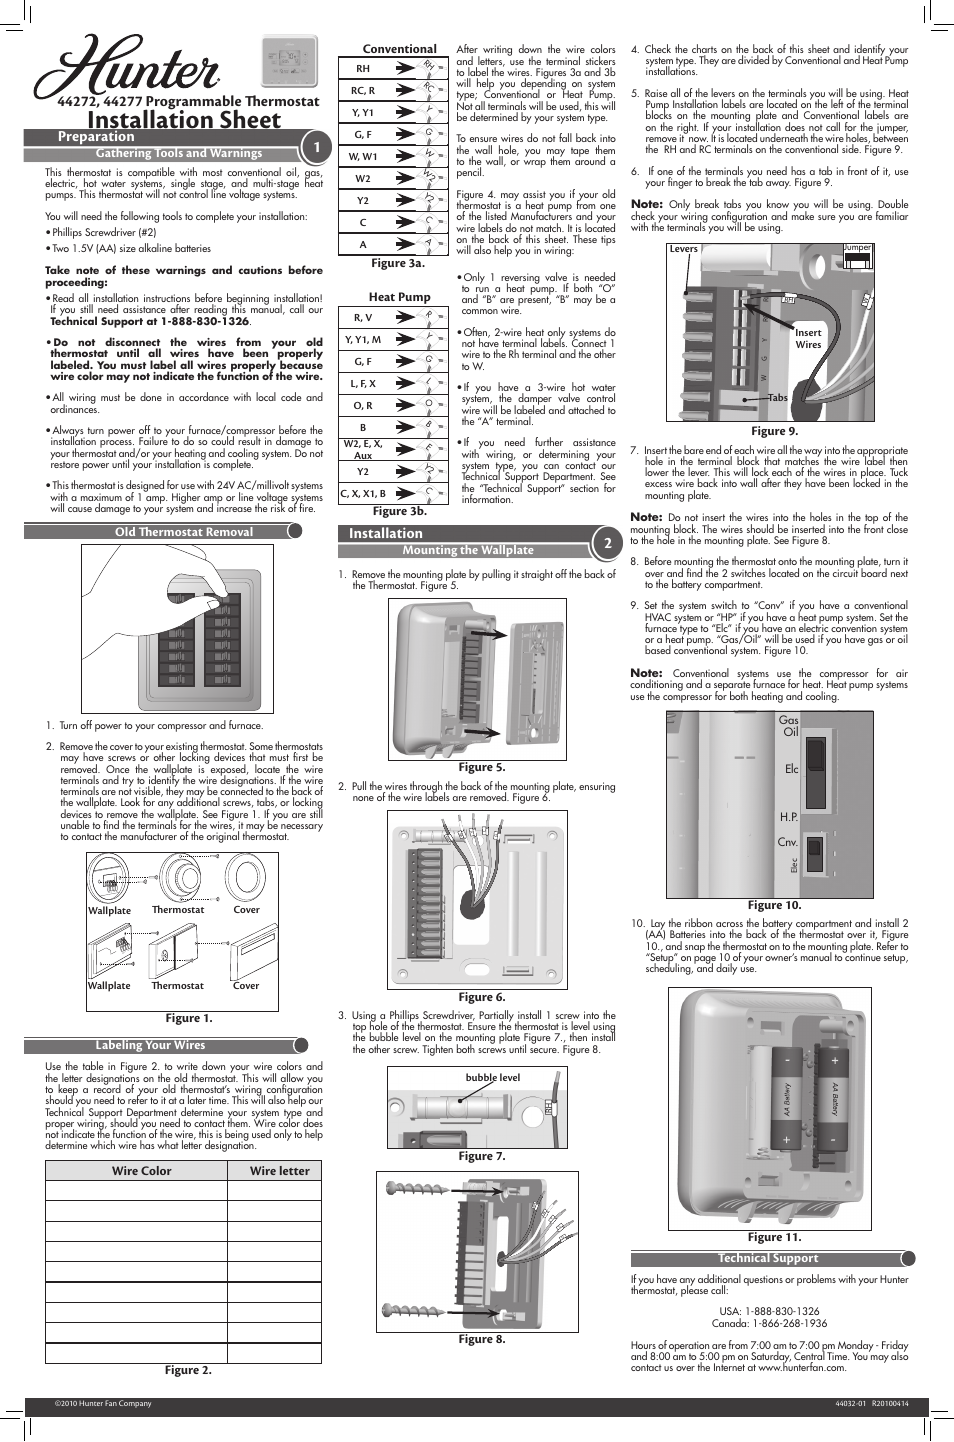 hunter fan 21871 wiring instructions hunter fan 44277 user manual | 2 pages | also for: 44272 #10